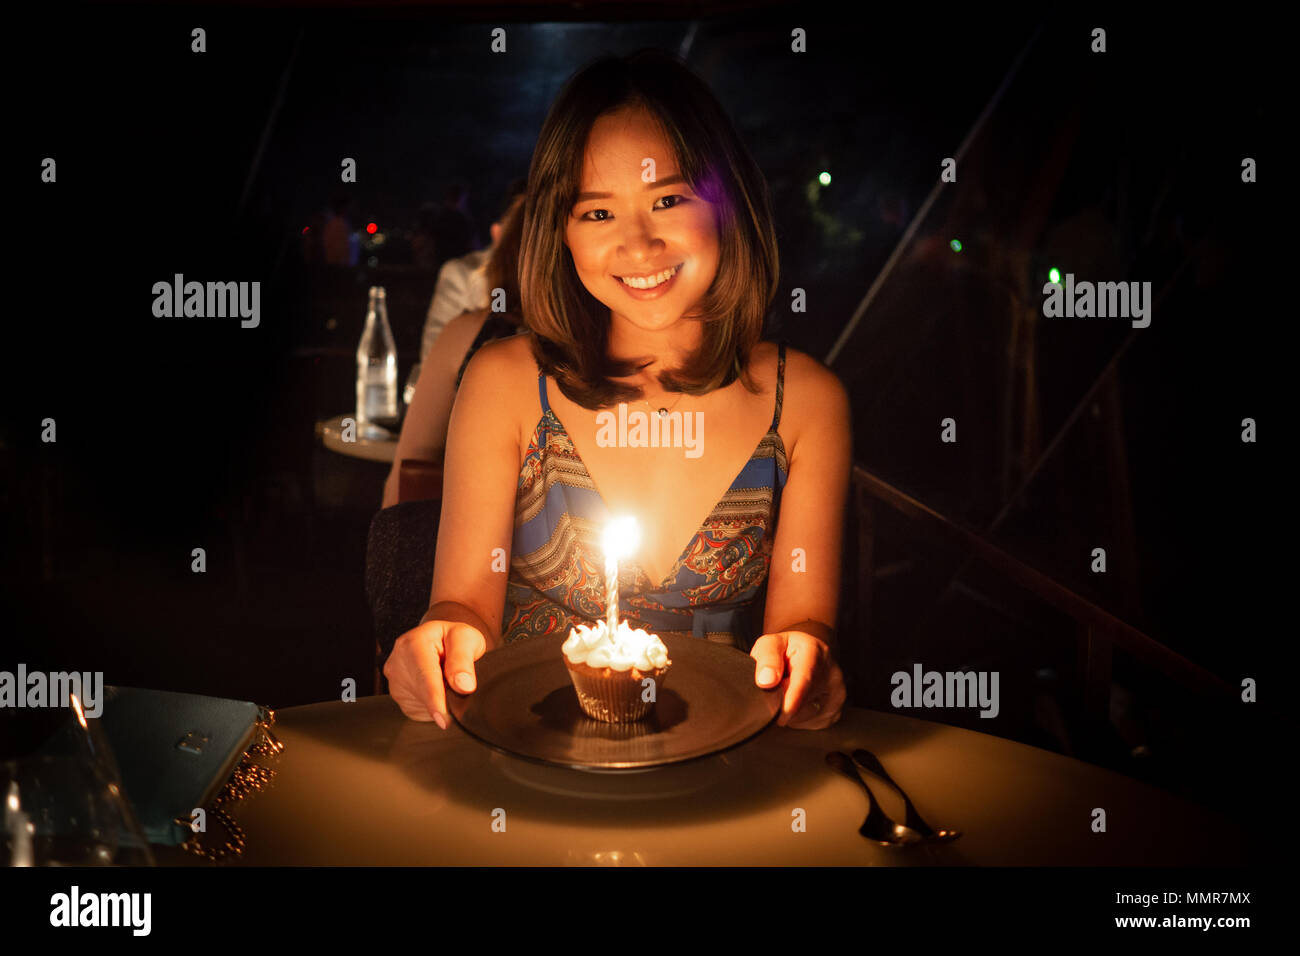 Young woman celebrating her birthday at a dinner in a nice restaurant - Stock Image